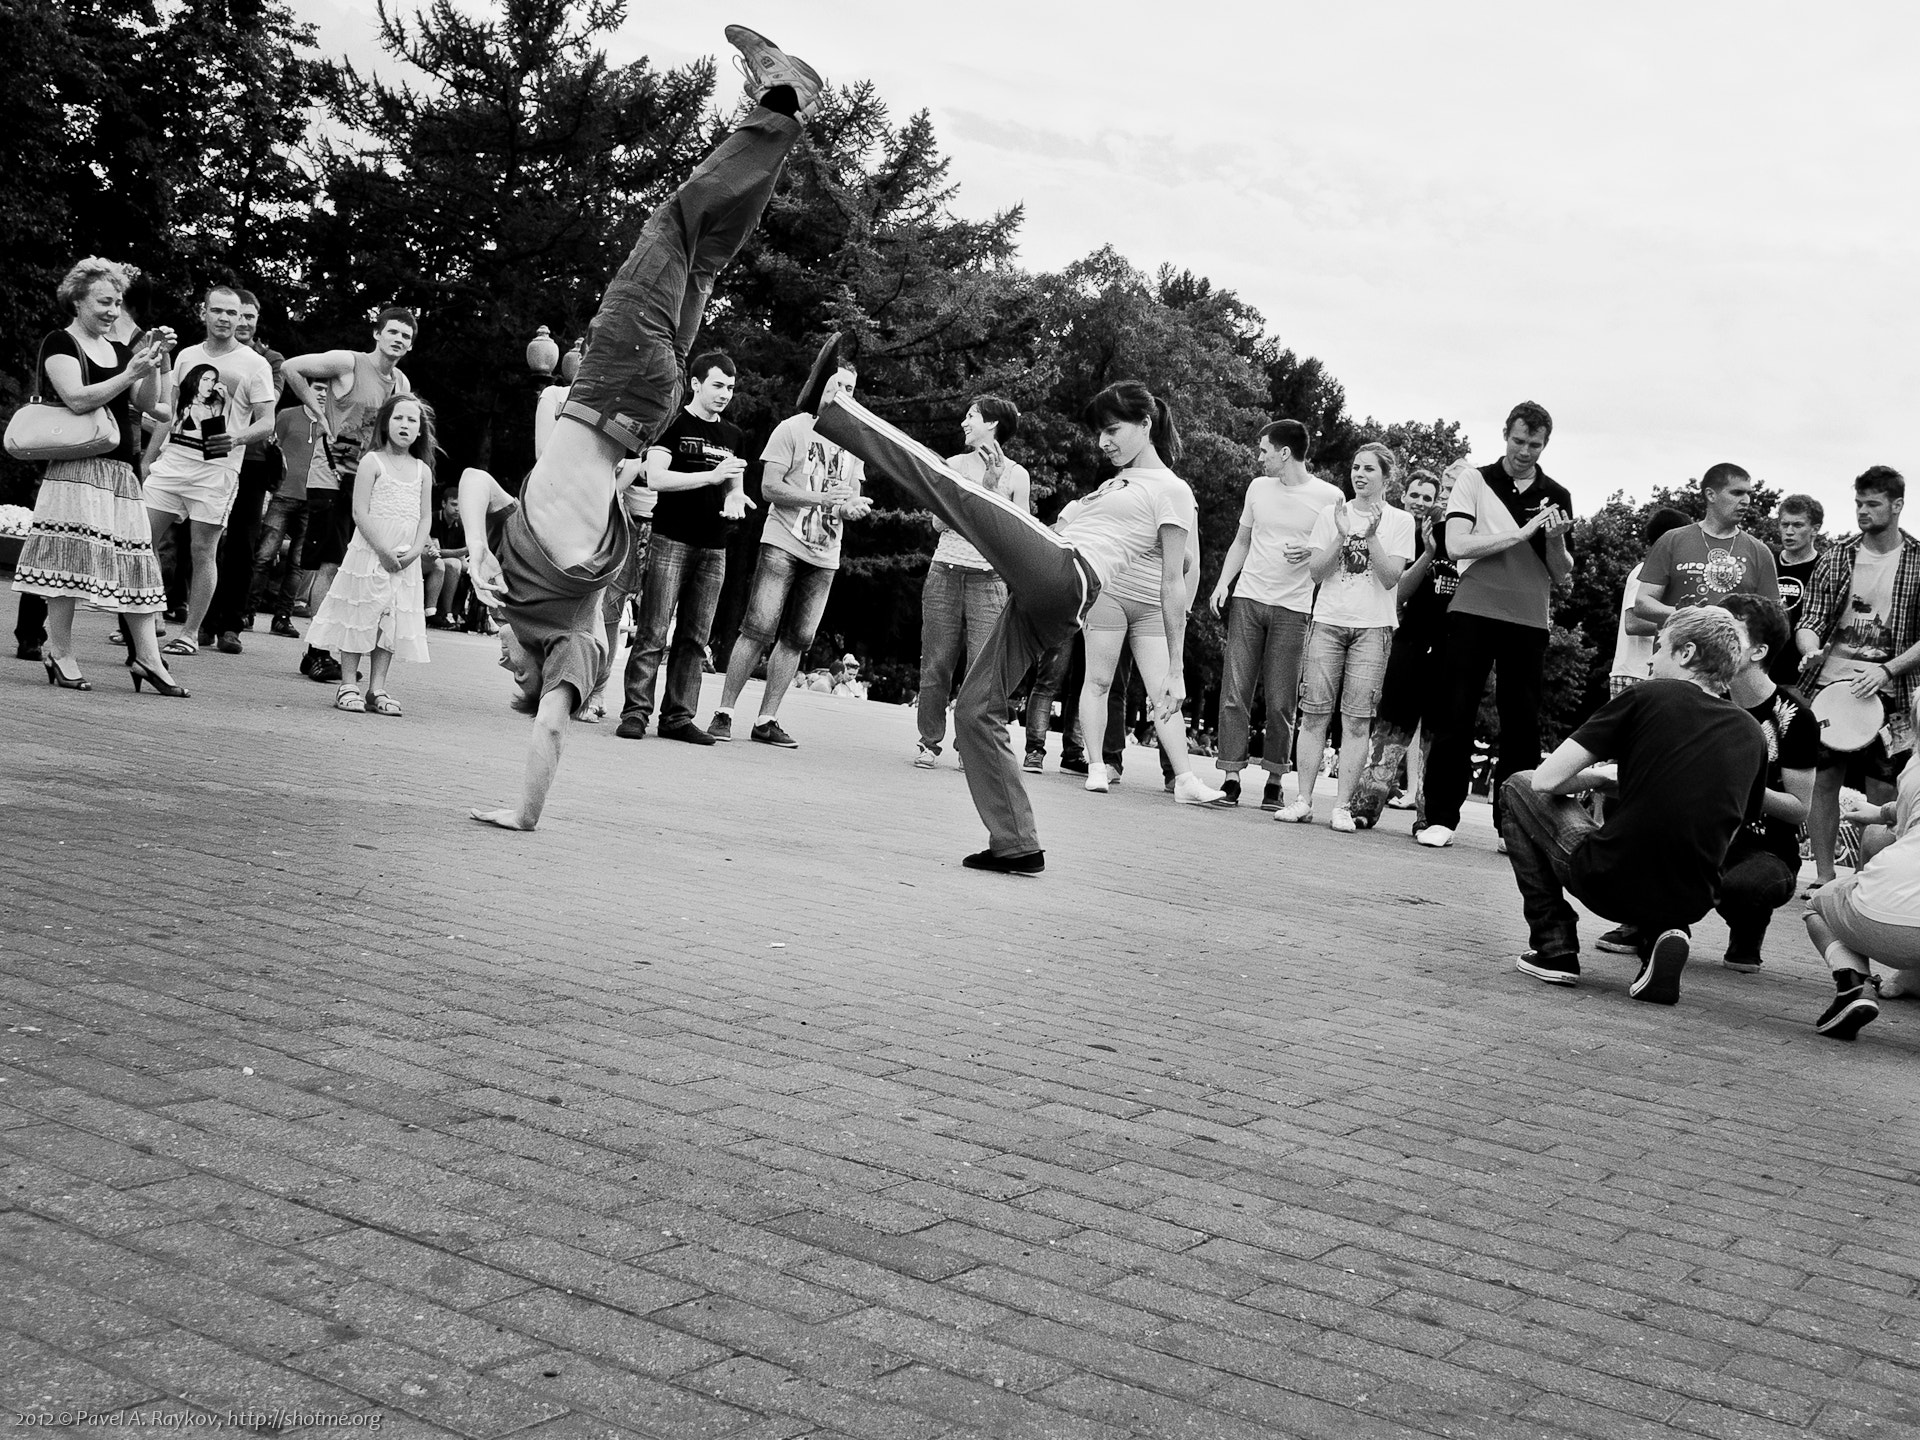 Photograph Street Capoeira by Pavel Raykov on 500px